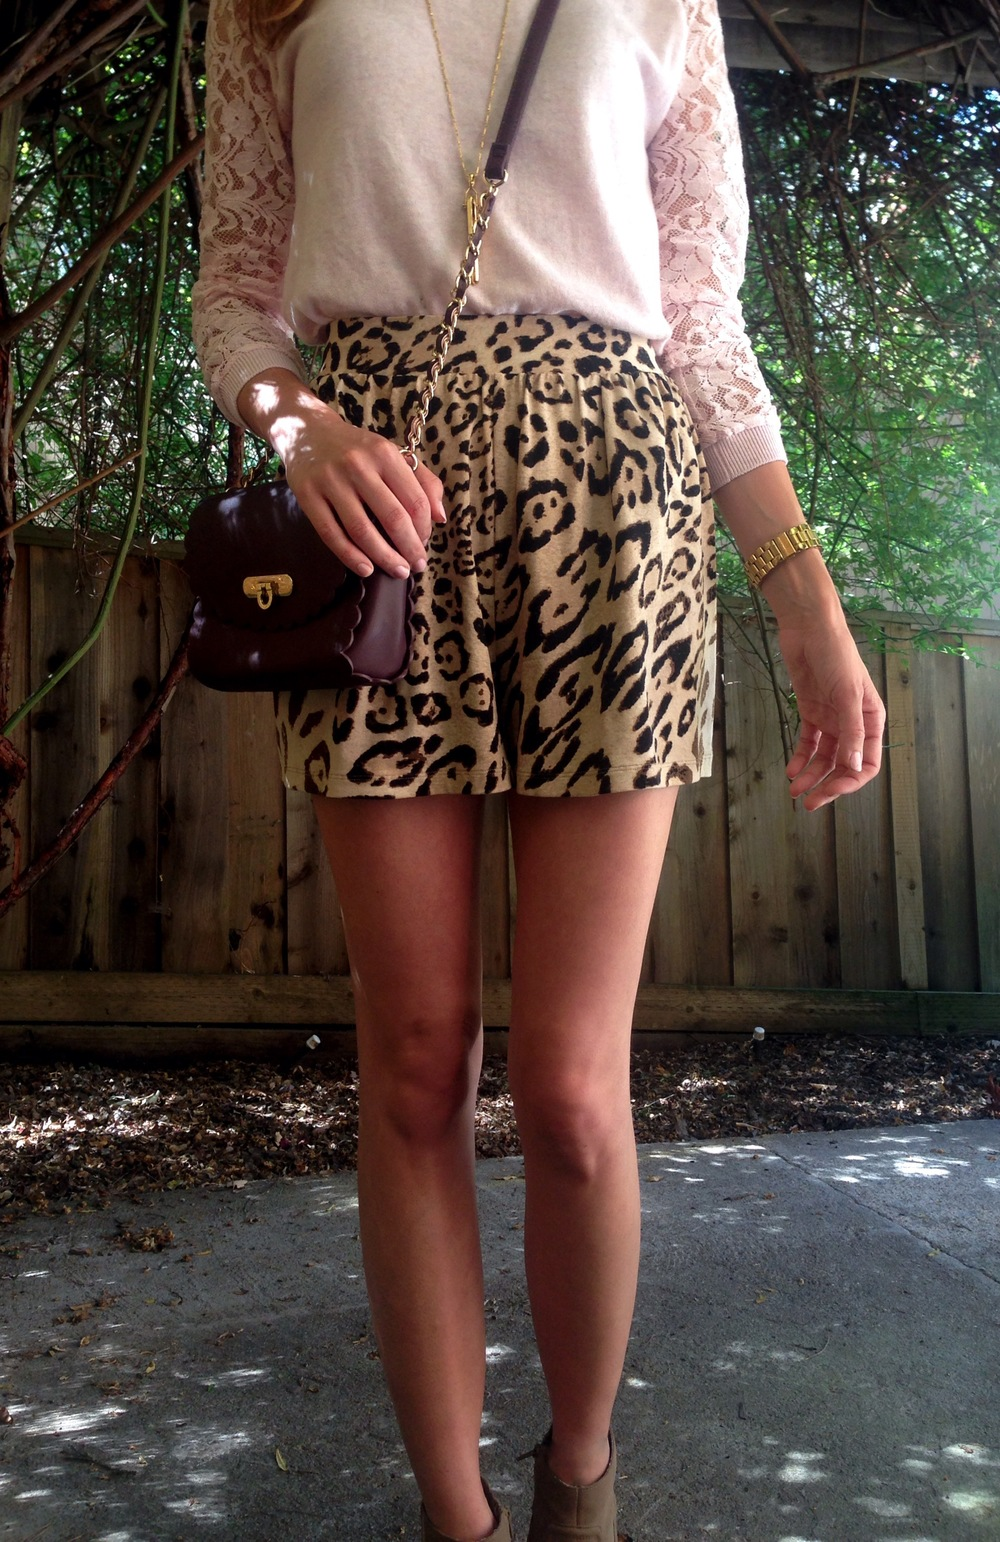 Top: ASOS. Shorts: ASOS. Bag: ASOS. Shoes: Dolce Vita via Tjmaxx. Necklace: Stella & Dot